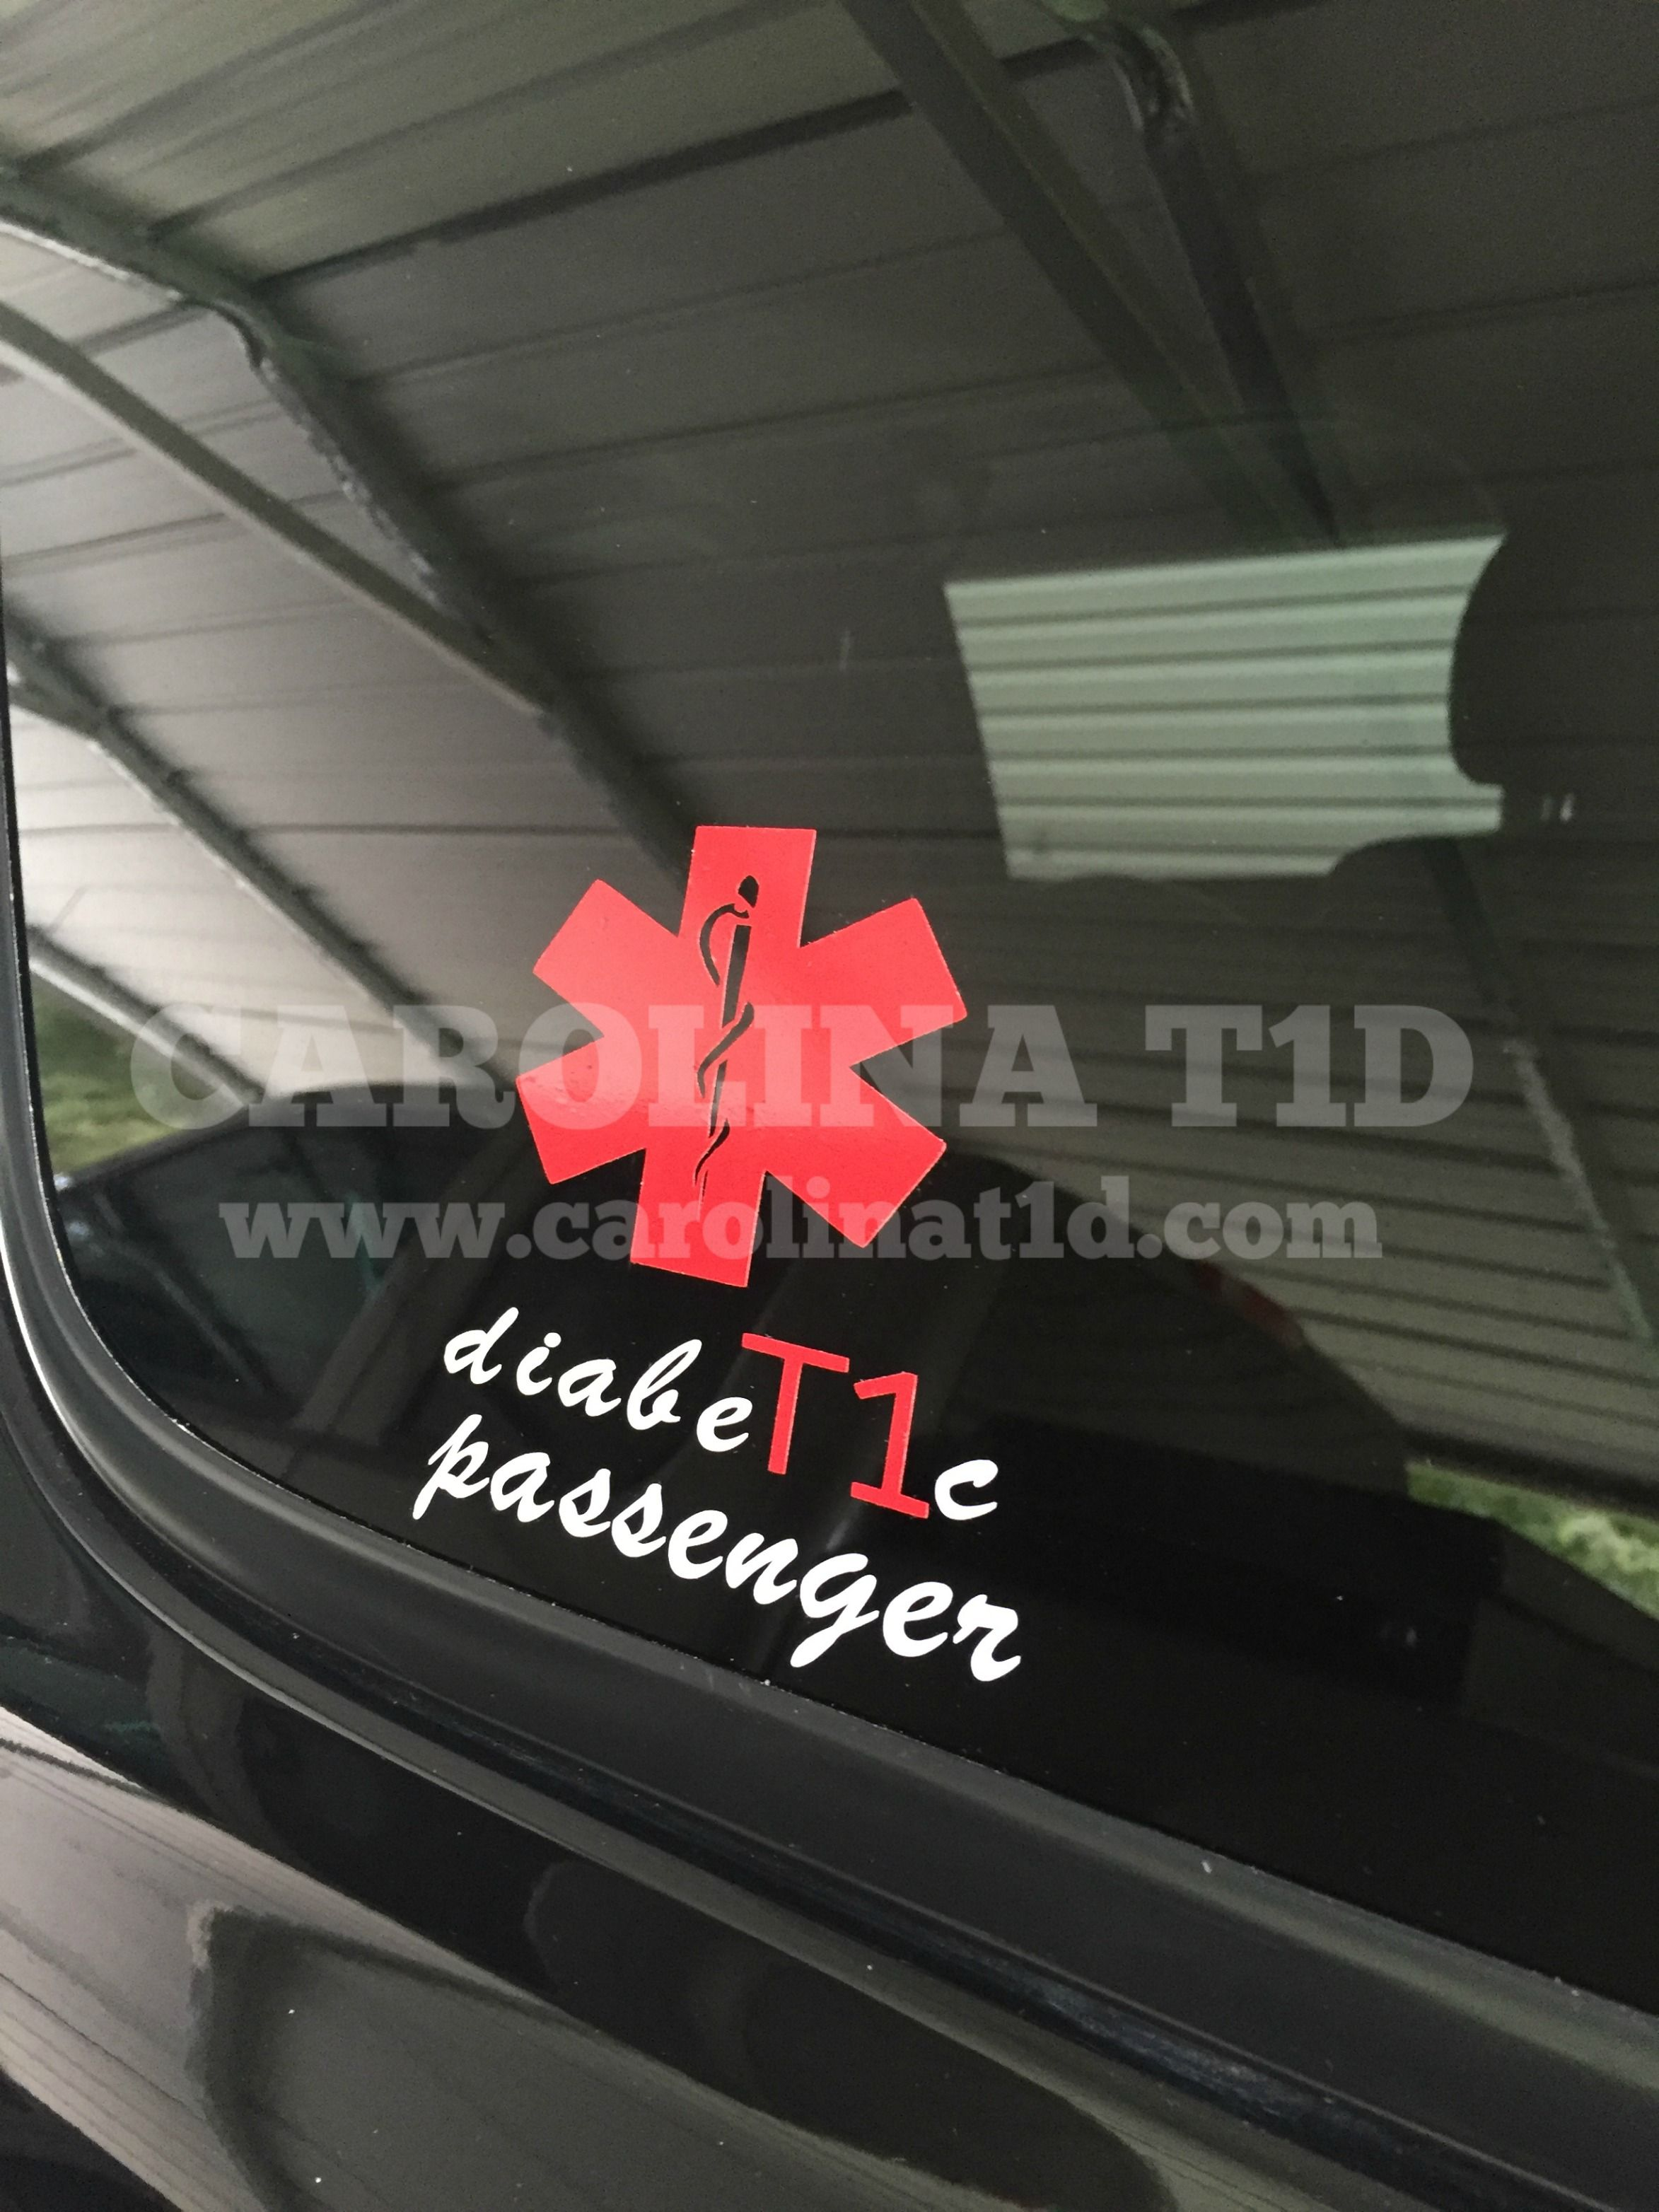 Type 1 diabetic passenger vinyl decal on customers suv